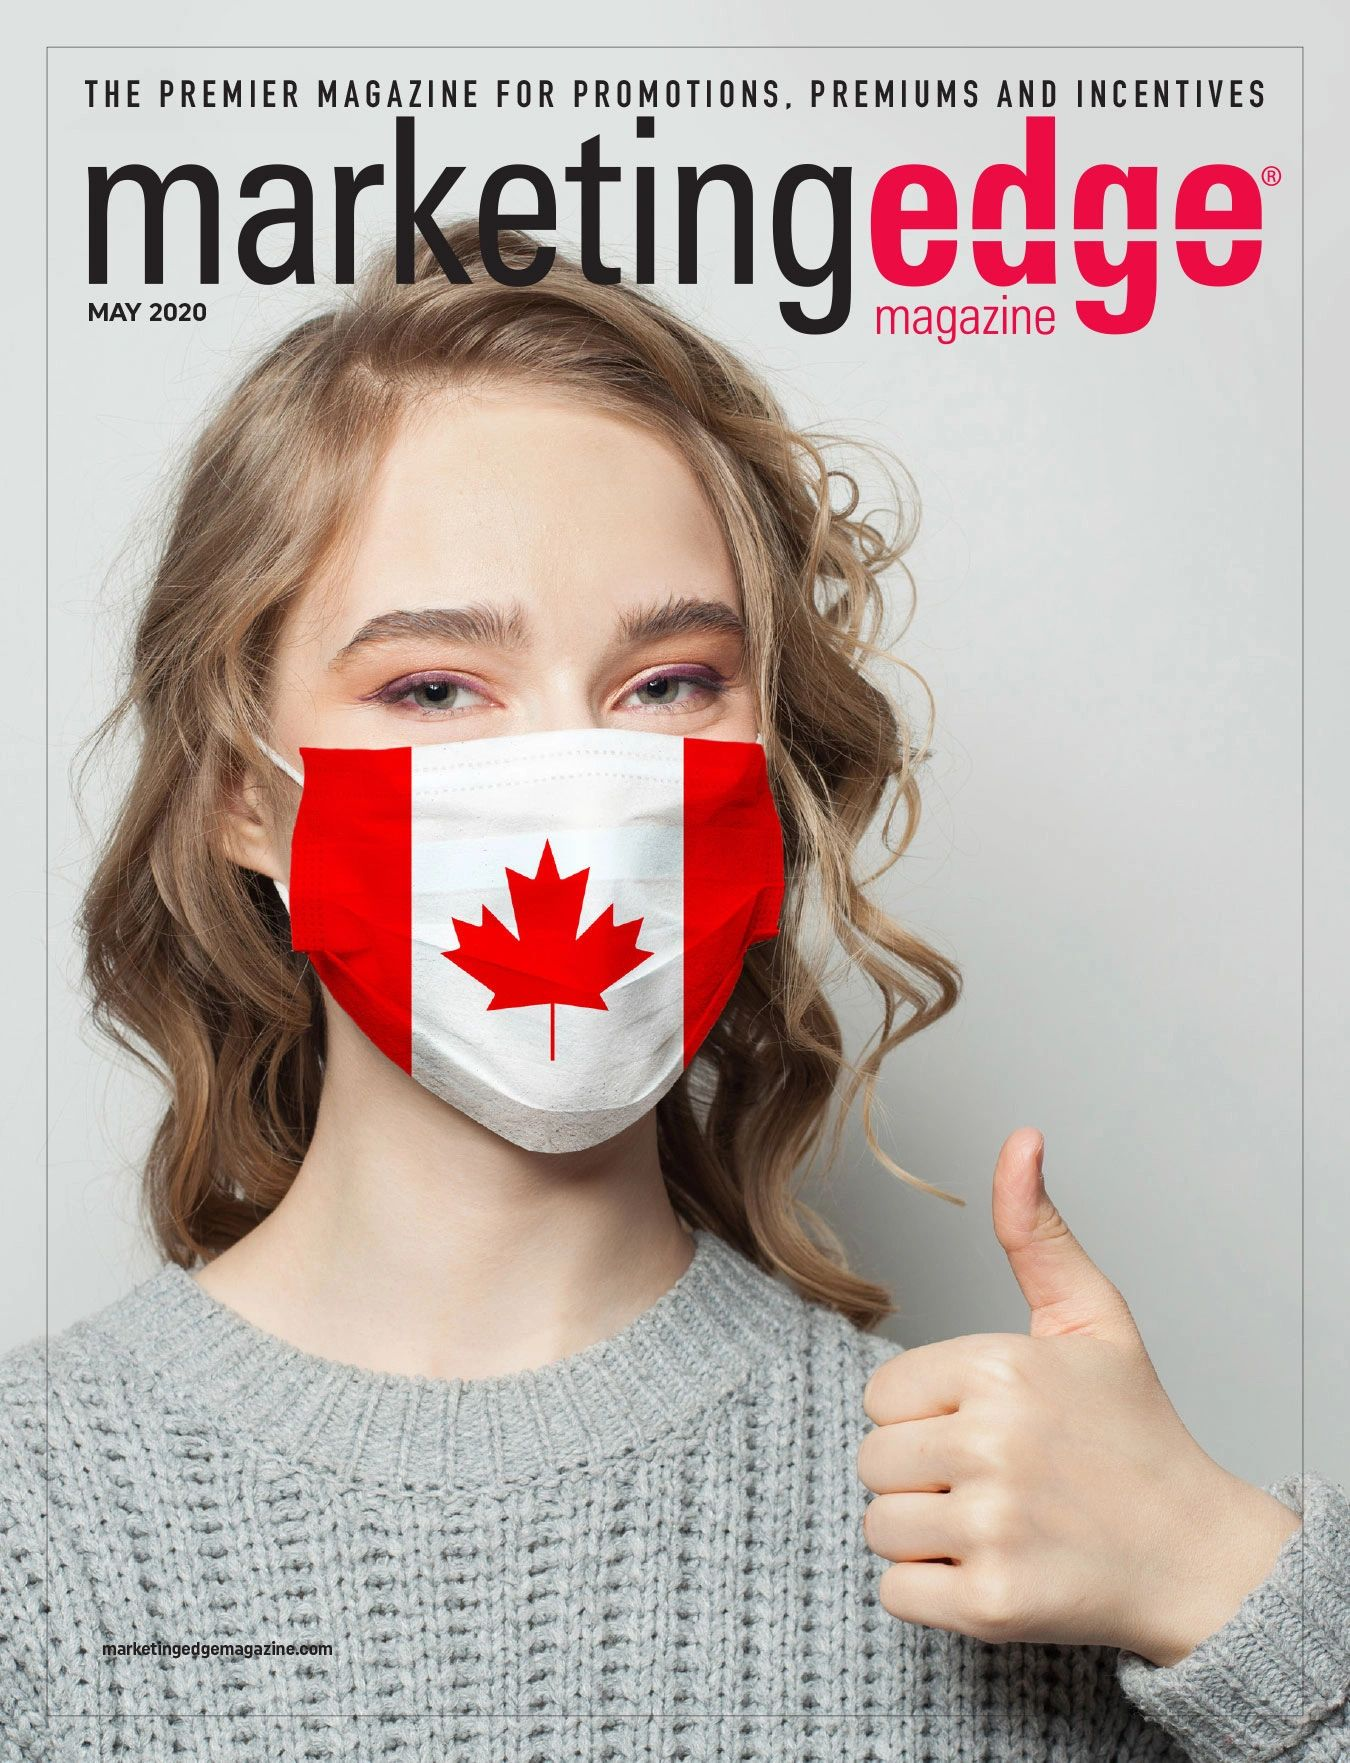 Marketingedge Magazine - Cover - Spring - May 2020 - Heart of COVID-19 - Canada - Mask - PPE